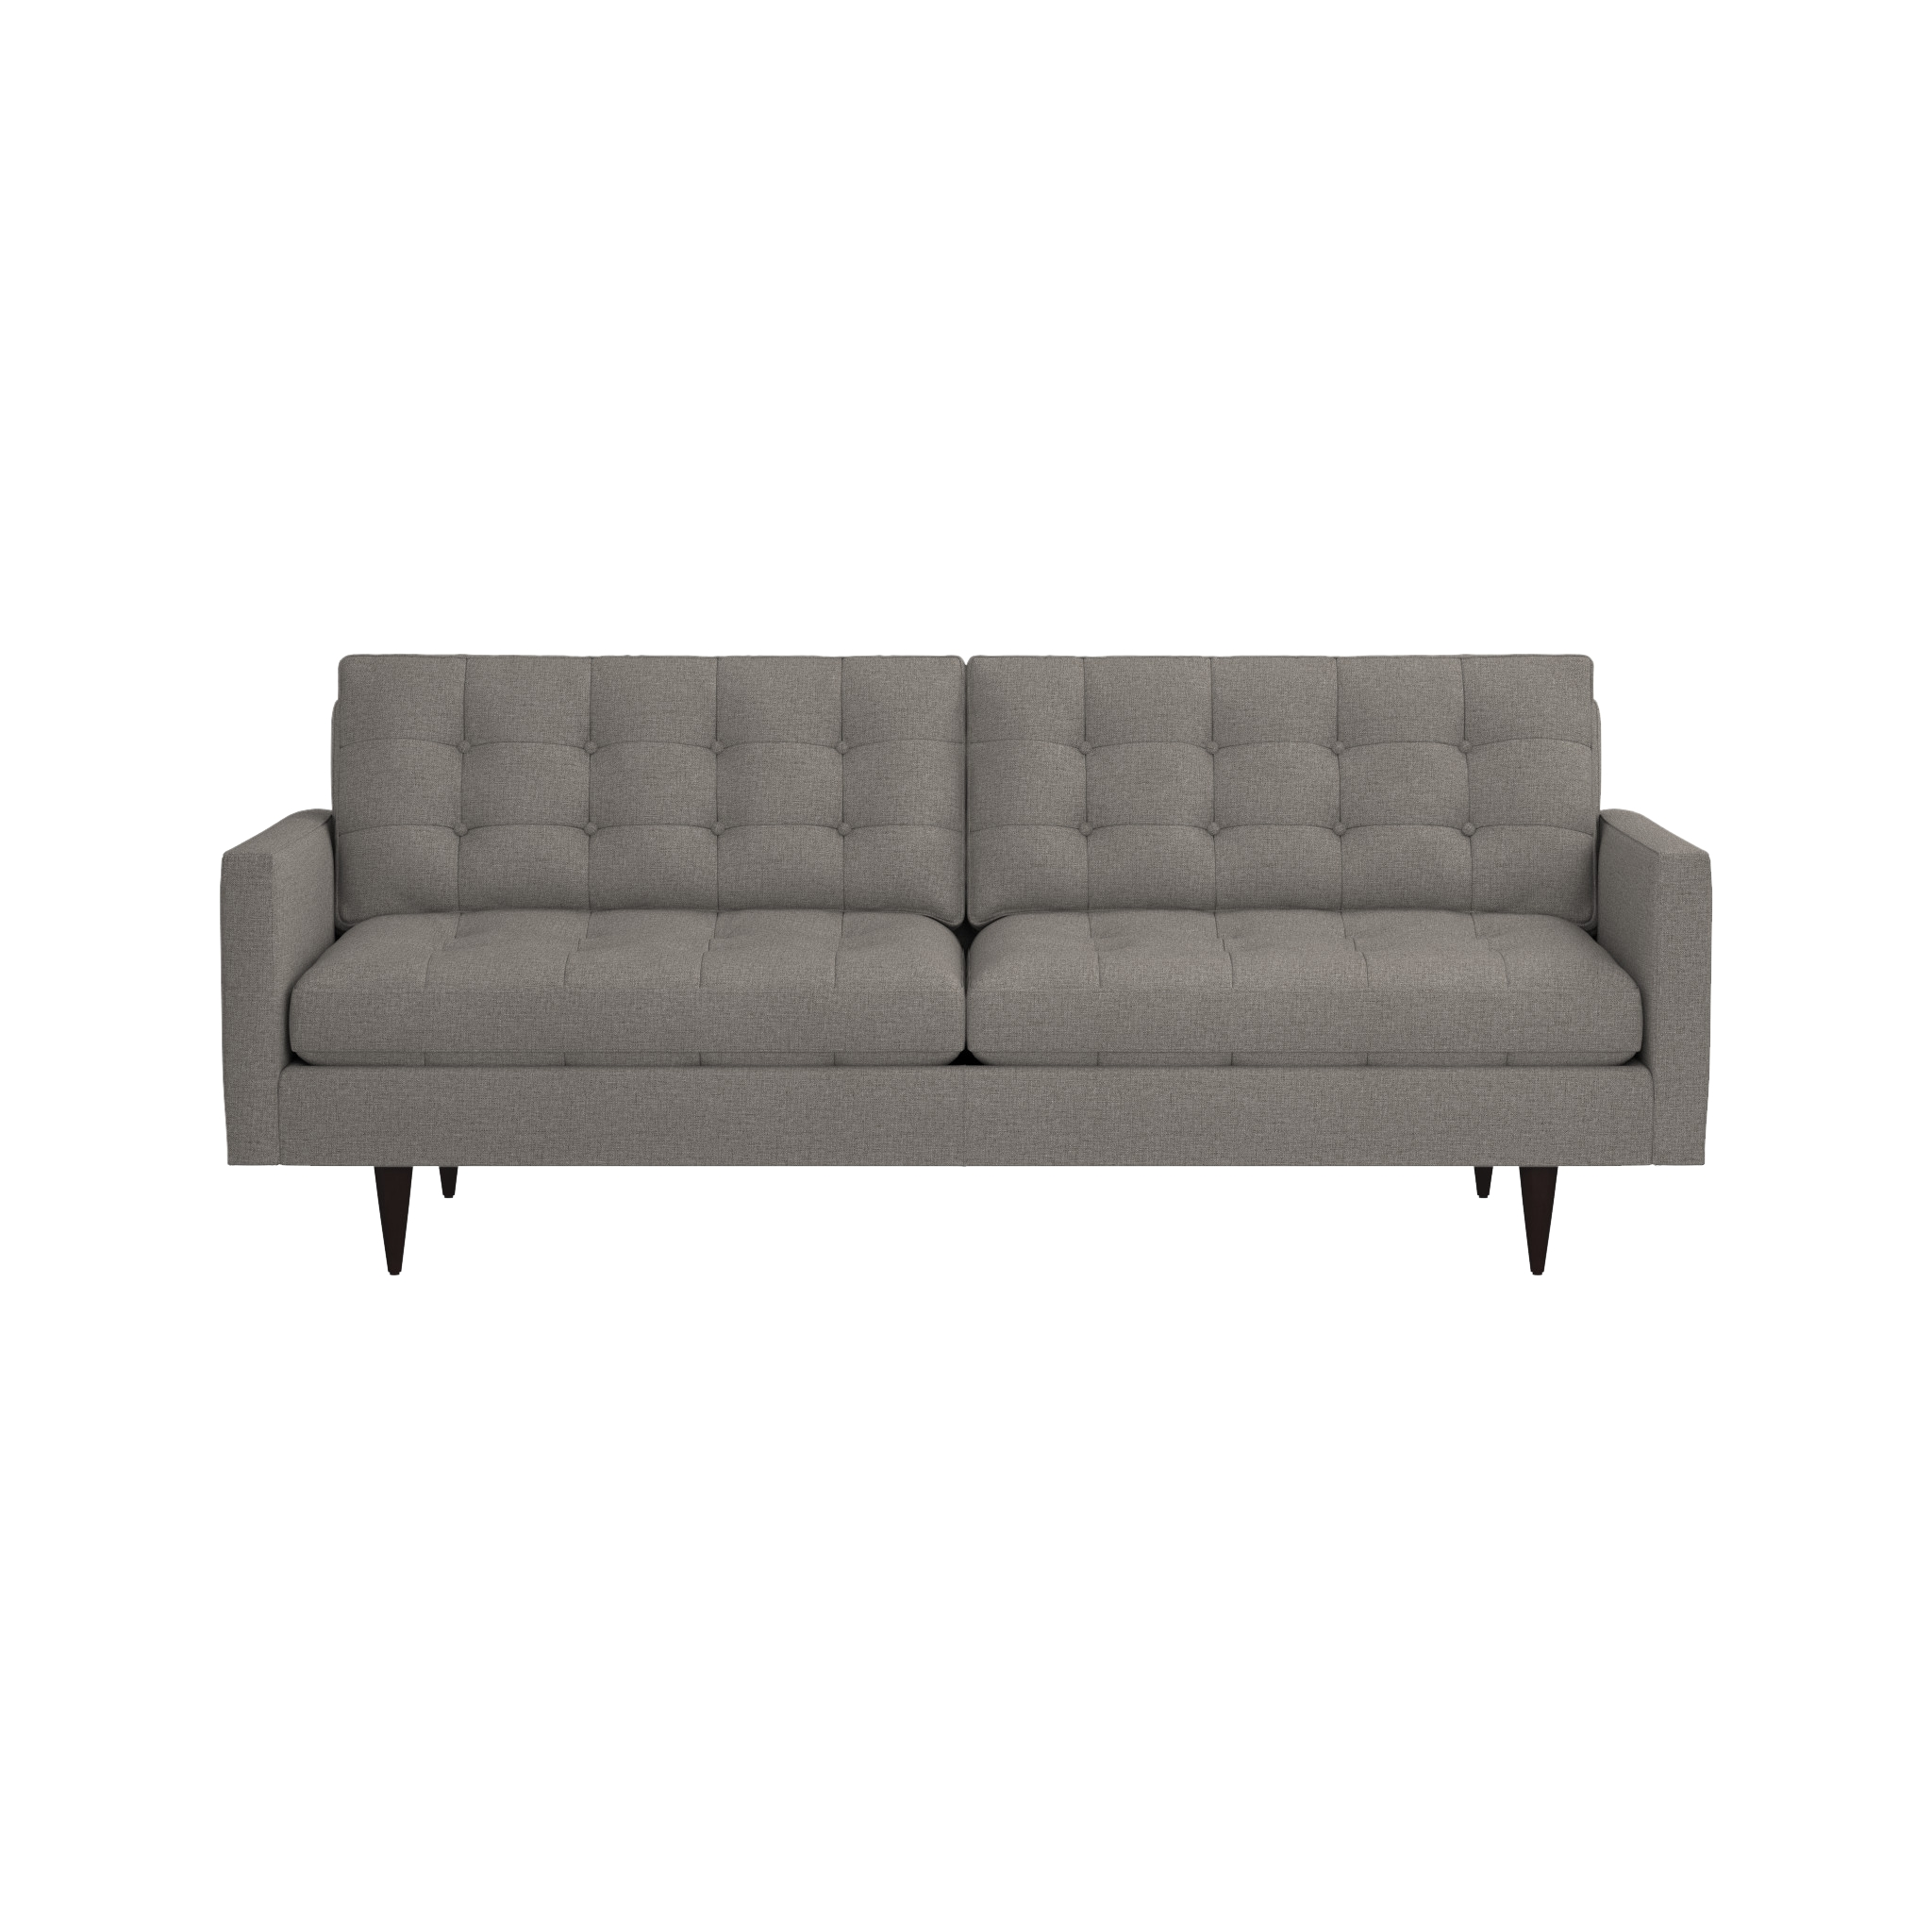 Petrie Mid Century Sofa | Crate And Barrel For Crate And Barrel Sofa Sleepers (Image 13 of 20)